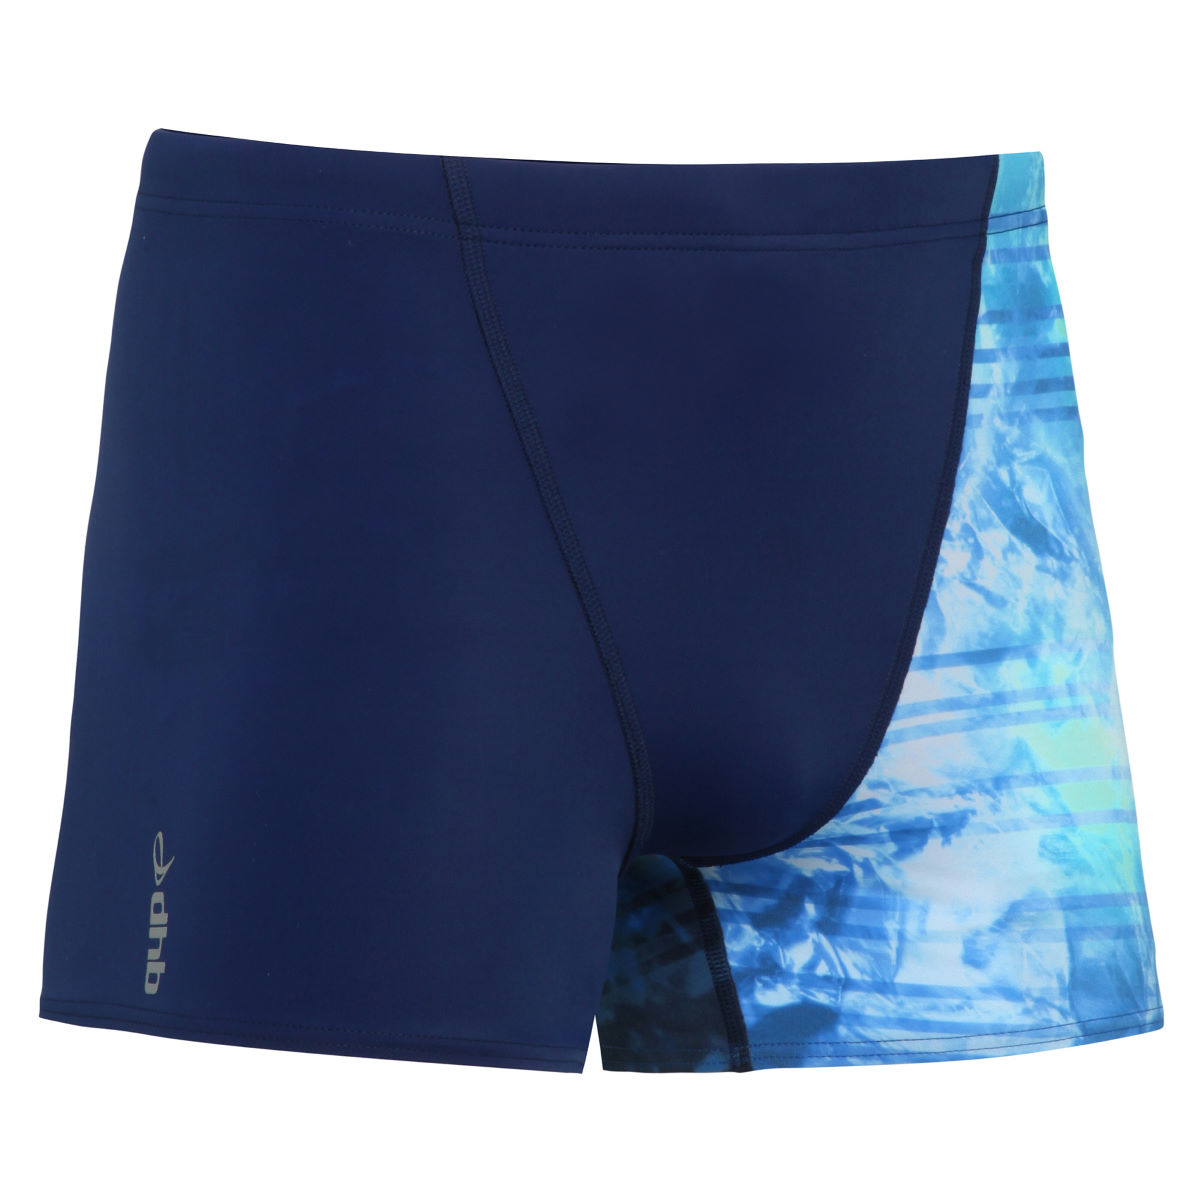 Product image of dhb Men's Printed Aquashorts   Adult Swimwear